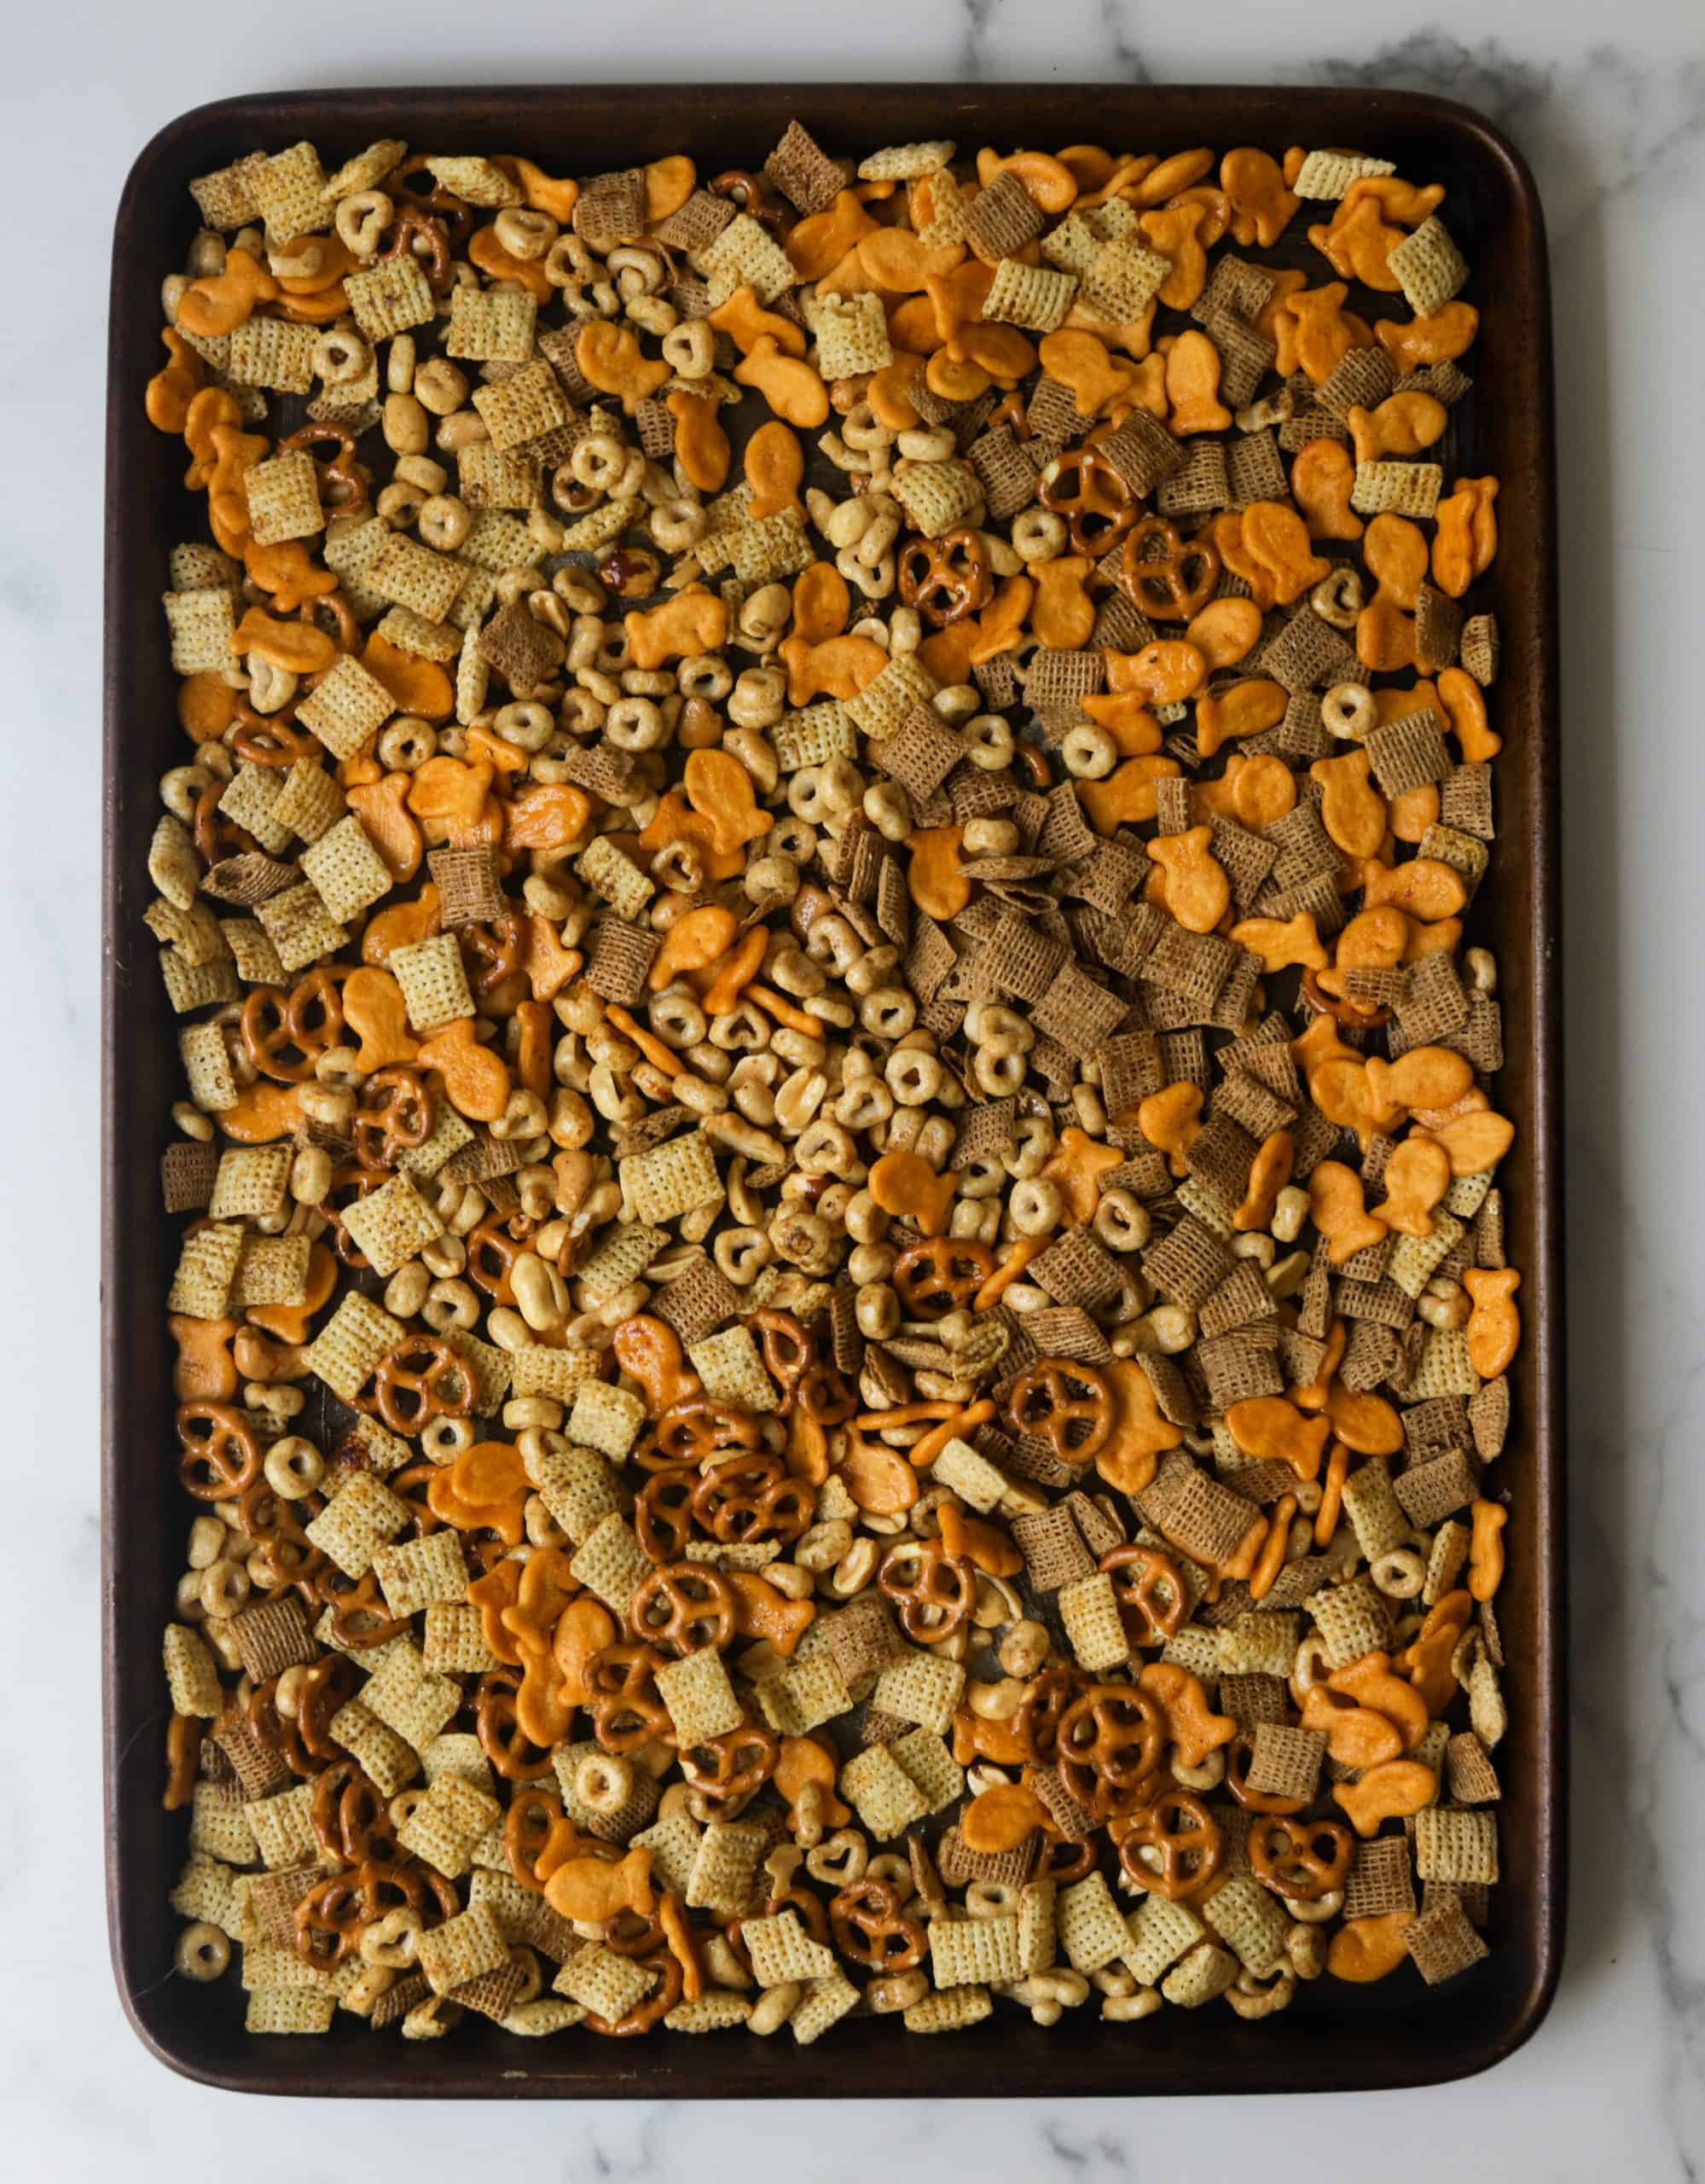 A sheet pan with chex mix.